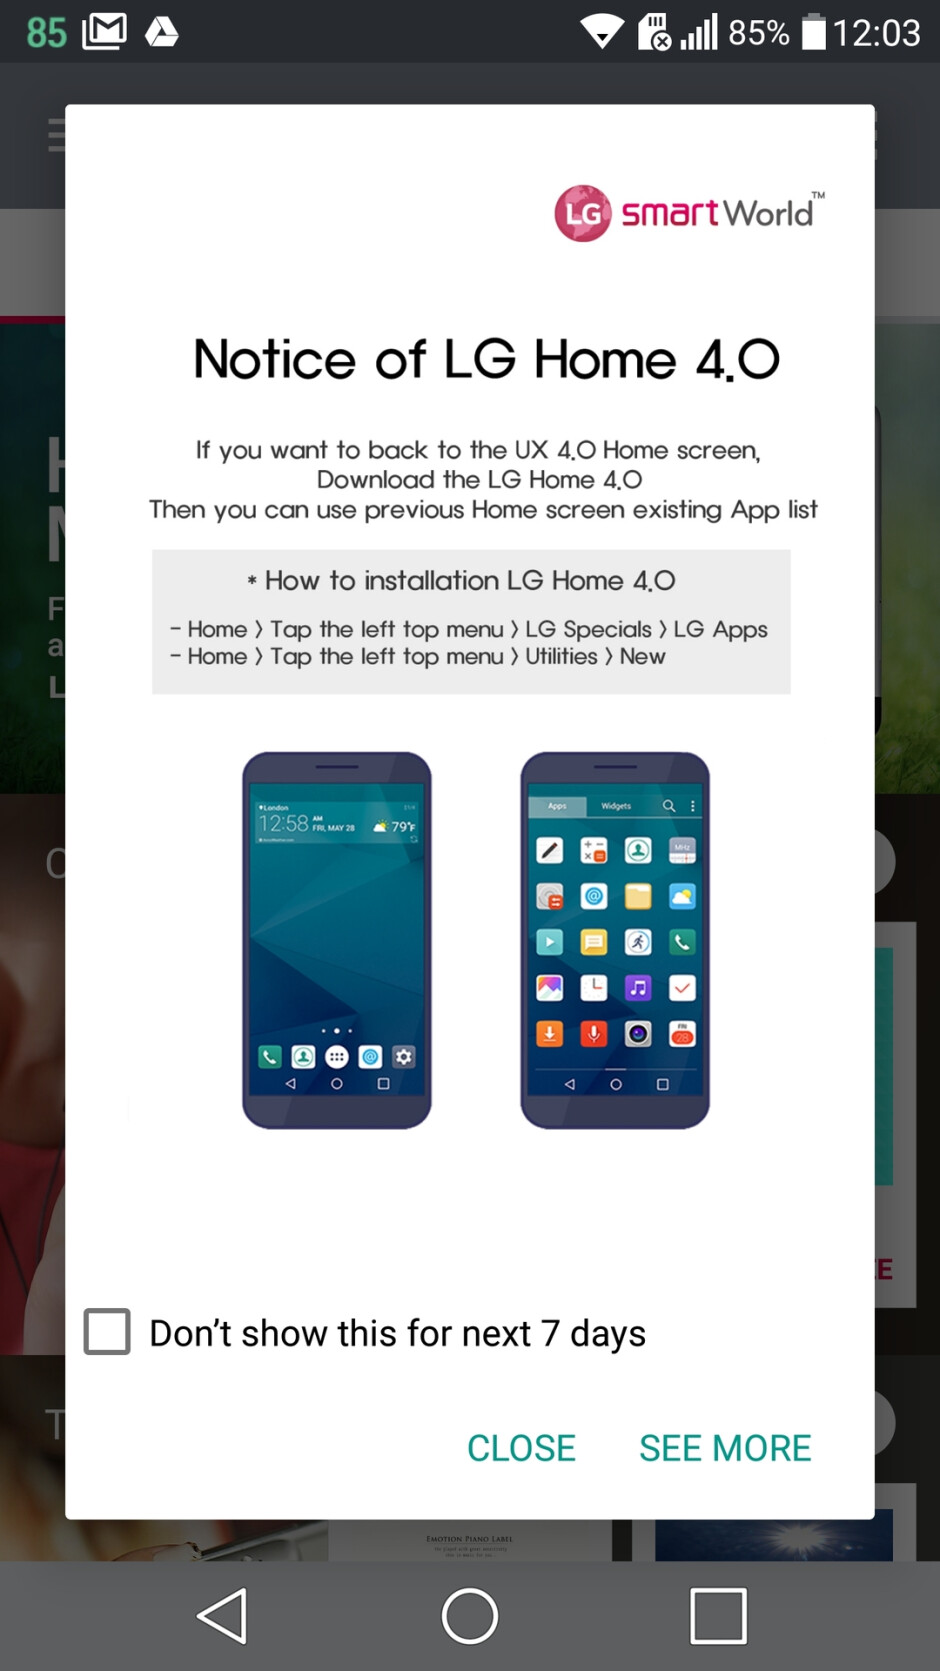 We opened SmartWorld and got this. - LG is bringing the app drawer back to the LG G5, Stylus 2, and K8 – here's how to get it